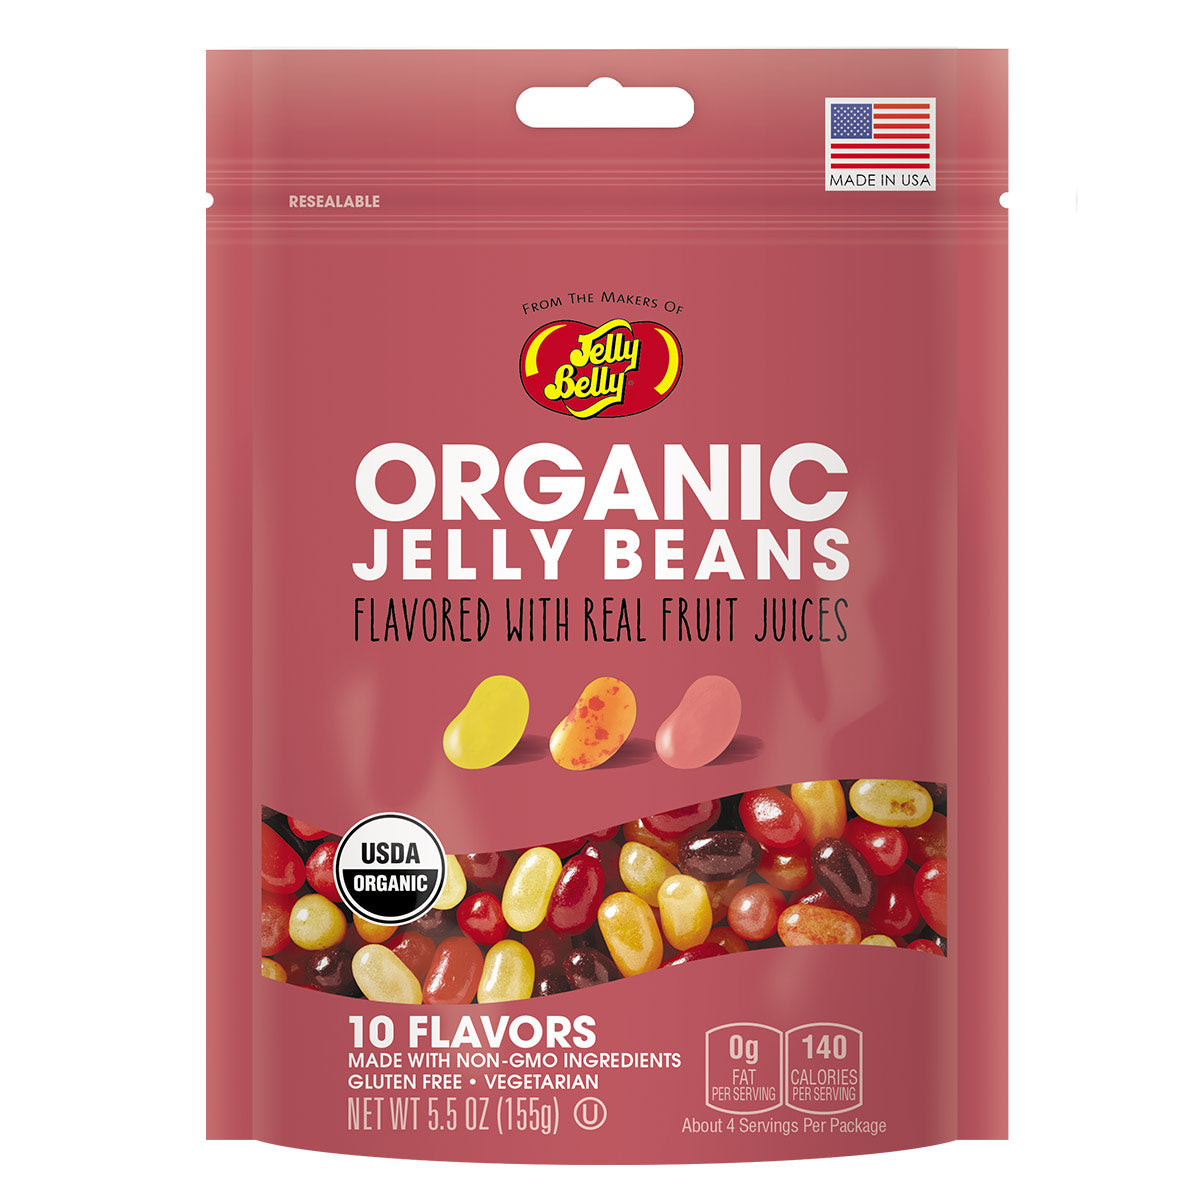 Organic Jelly Beans by Jelly Belly